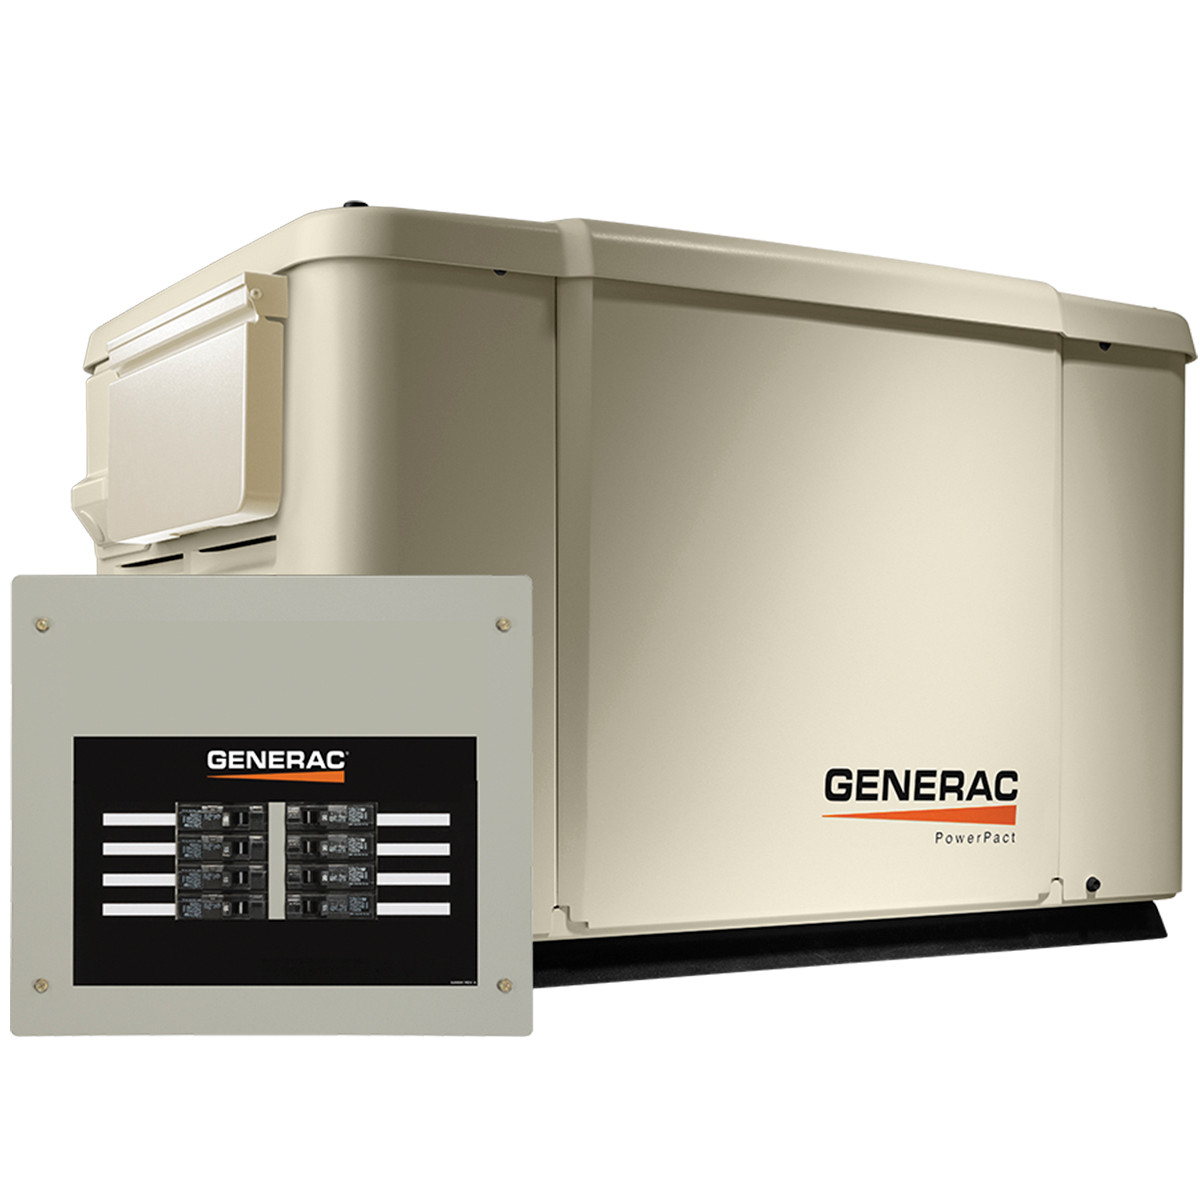 hight resolution of generac powerpact 6998 7 5kw generator with wi fi 50a 8 circuit transfer